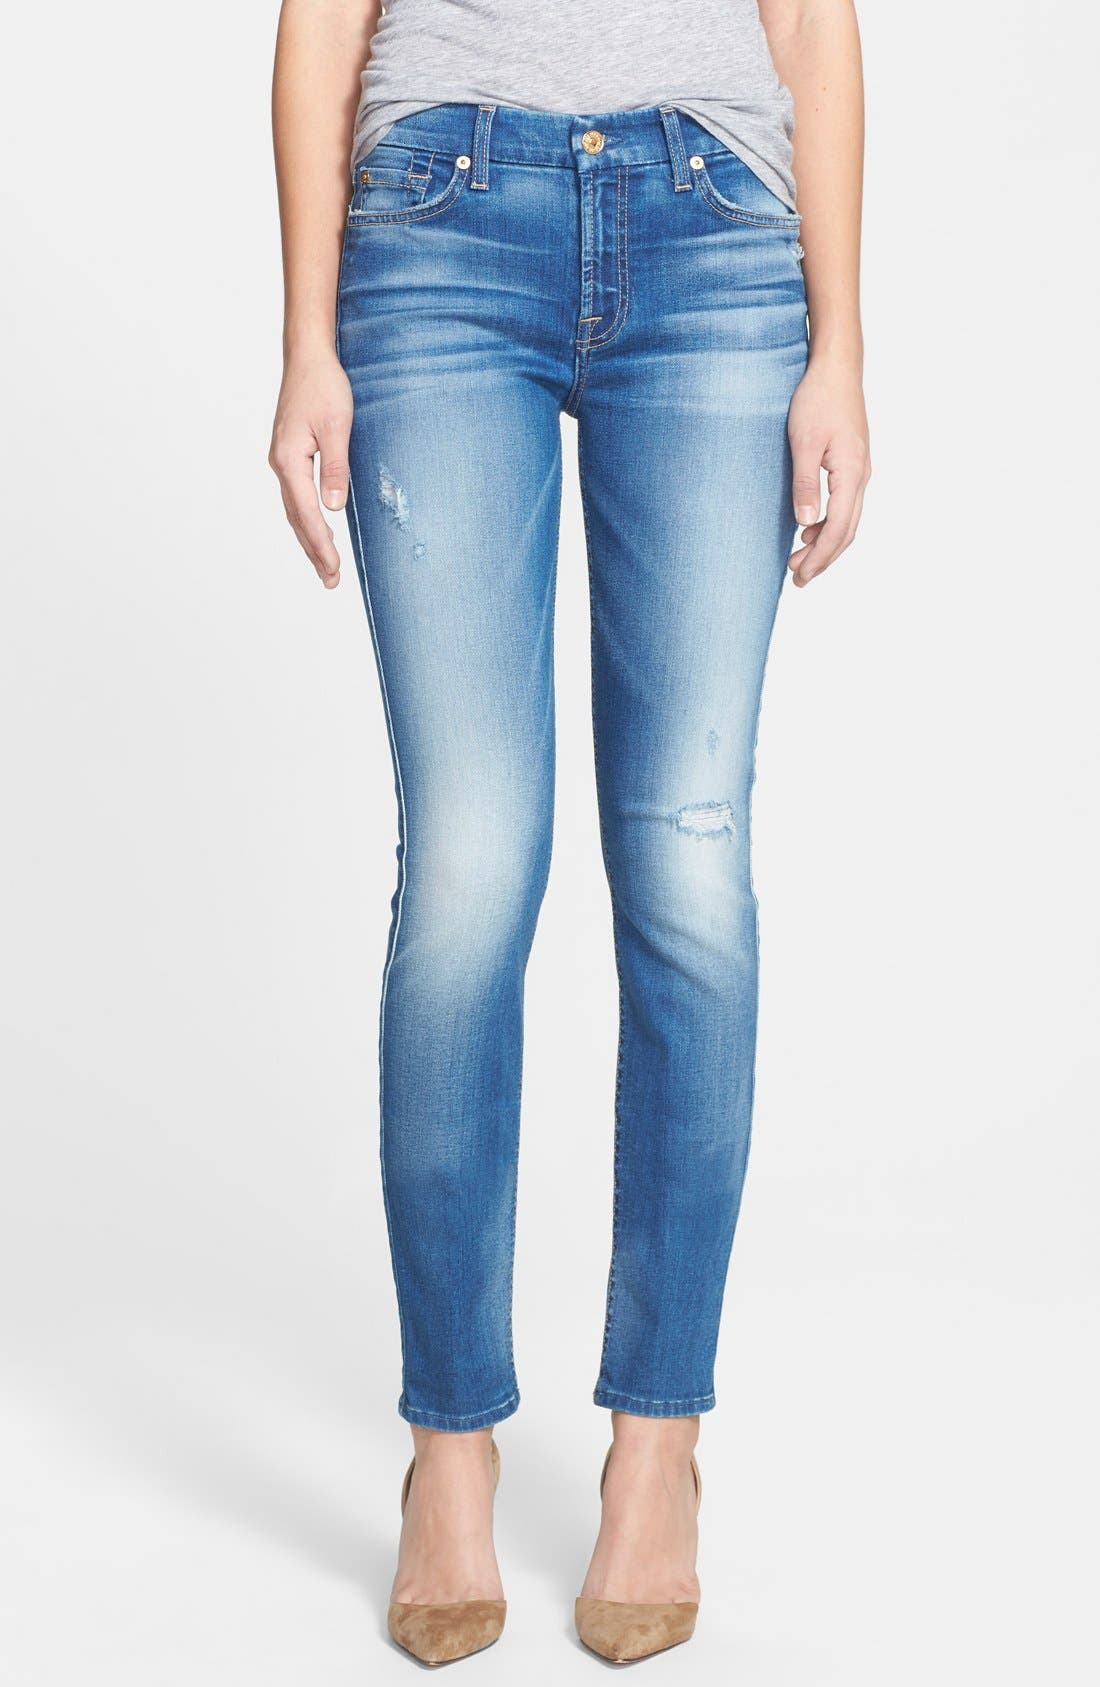 Alternate Image 1 Selected - 7 For All Mankind® Mid Rise Skinny Jeans (Beautiful Skies)